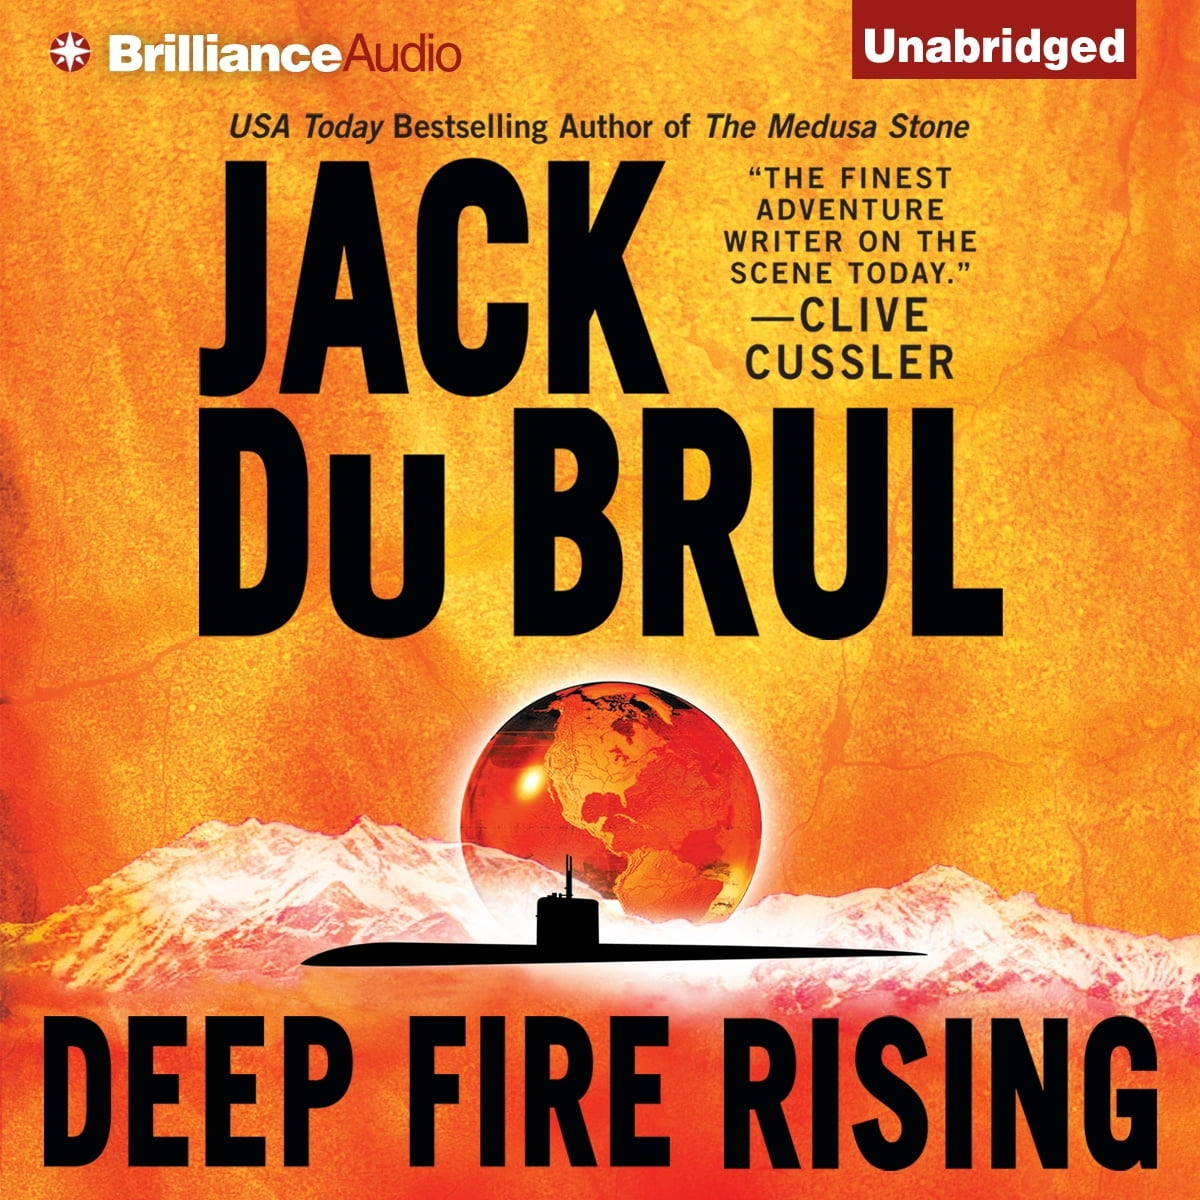 Deep Fire Rising audiobook by Jack Du Brul - Rakuten Kobo